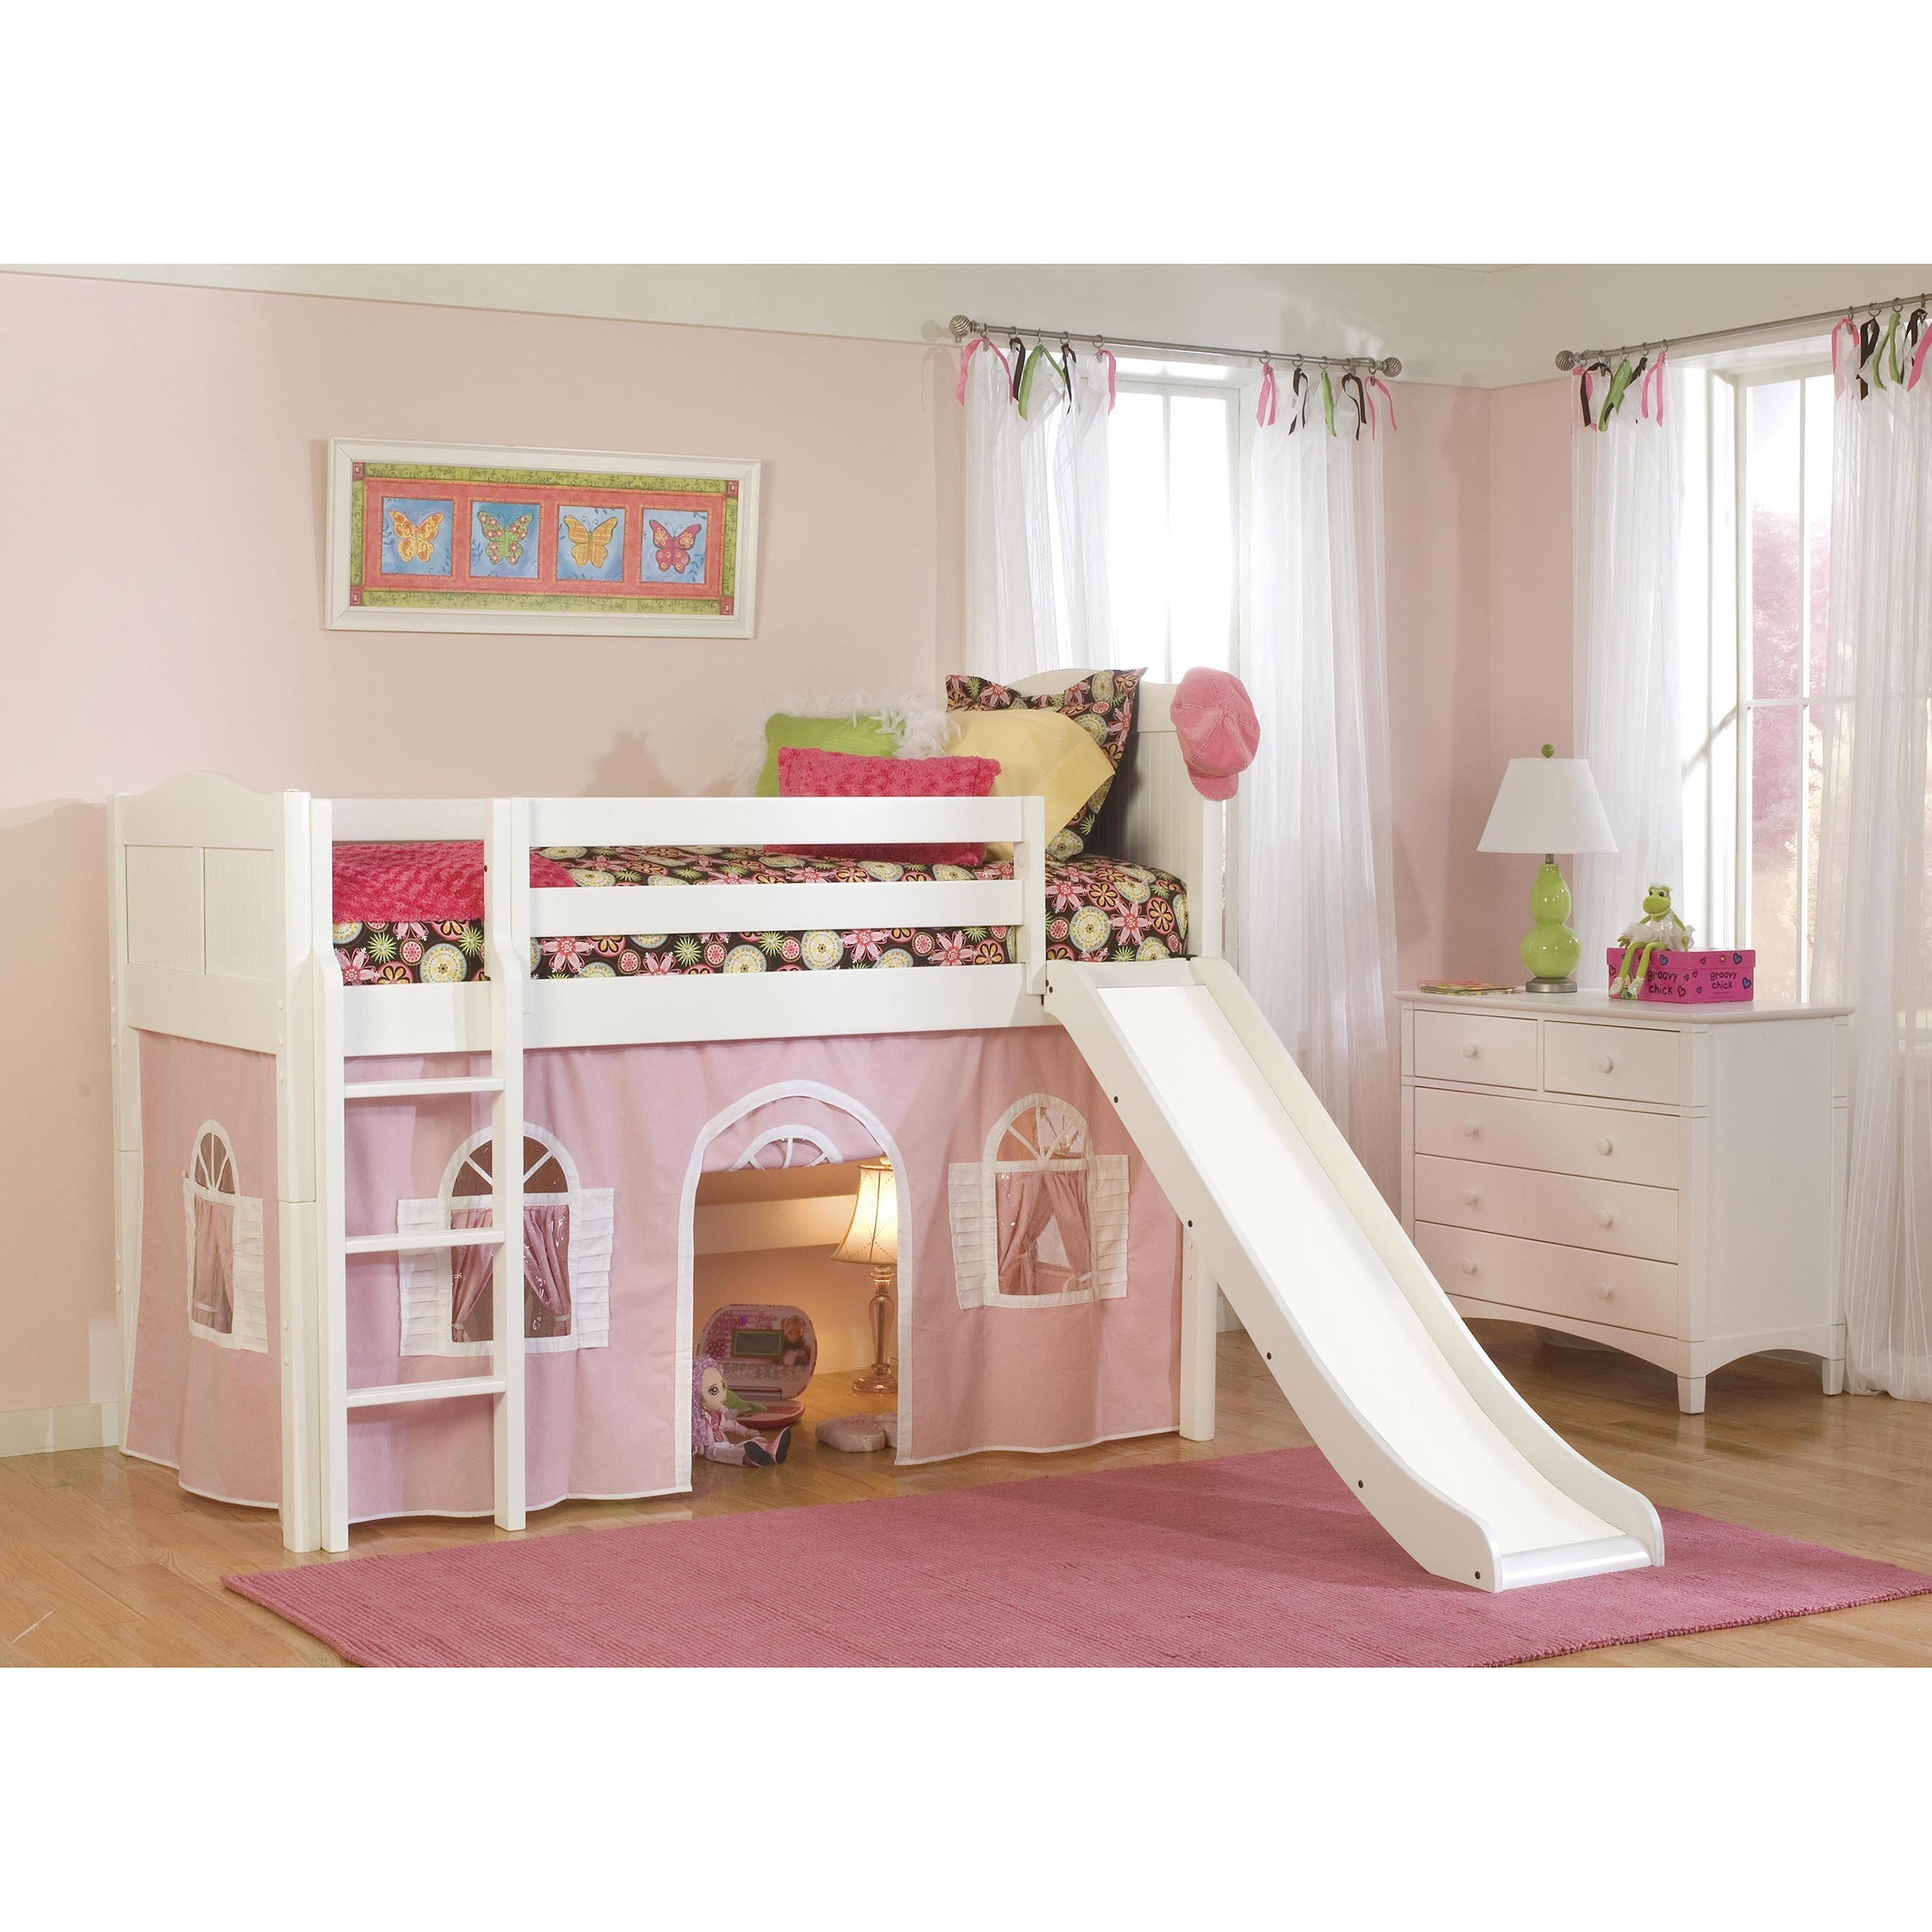 White Low Loft Twin Playhouse Bed With Slide And Ladder On Free Shipping Today 8551856